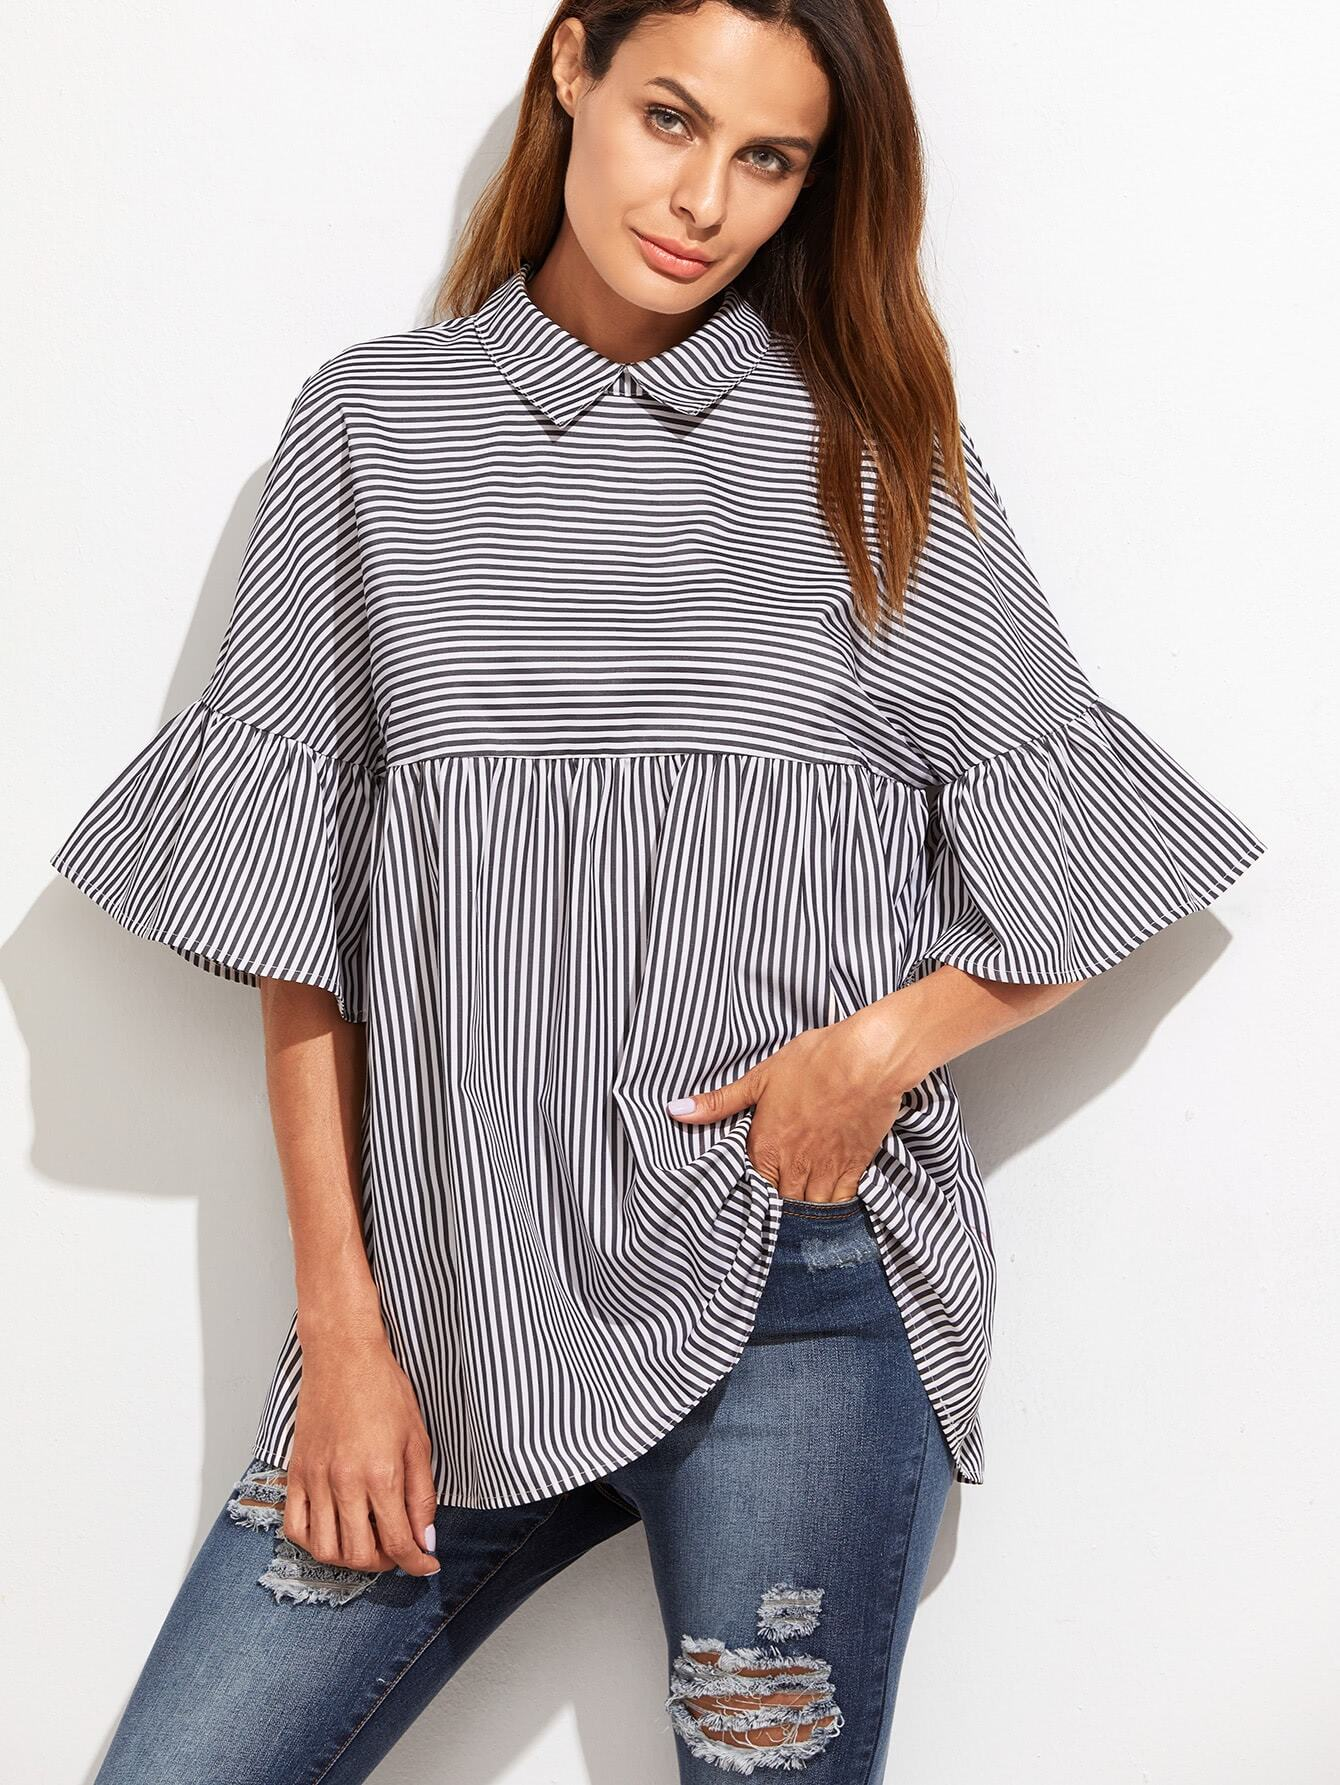 Black And White Striped Ruffle Sleeve Babydoll TopBlack And White Striped Ruffle Sleeve Babydoll Top<br><br>color: Black and White<br>size: L,M,S,XS